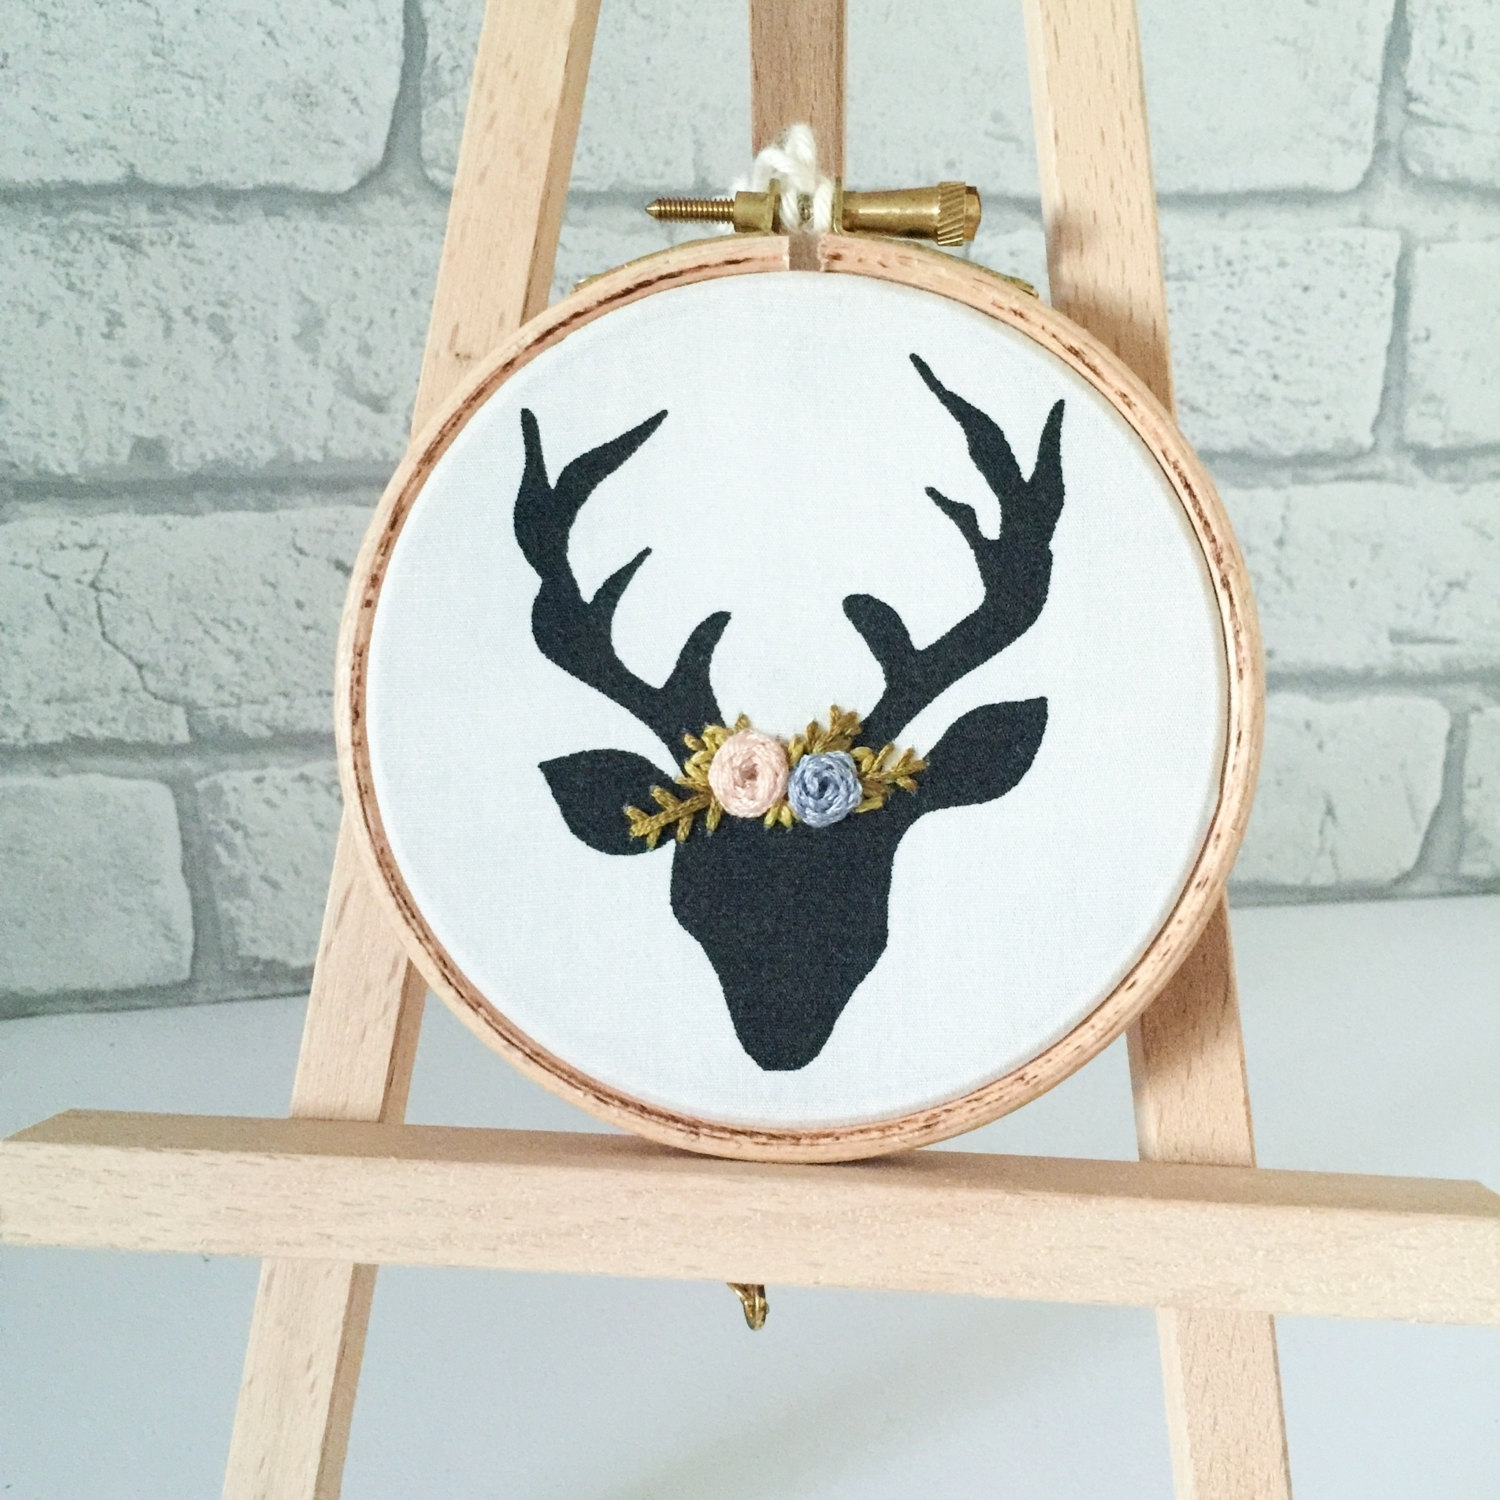 Stag Head, Hand Embroidery, Deer Head, Wall Hanging, Embroidery Pertaining To Most Recently Released Fabric Hoop Wall Art (Gallery 10 of 15)